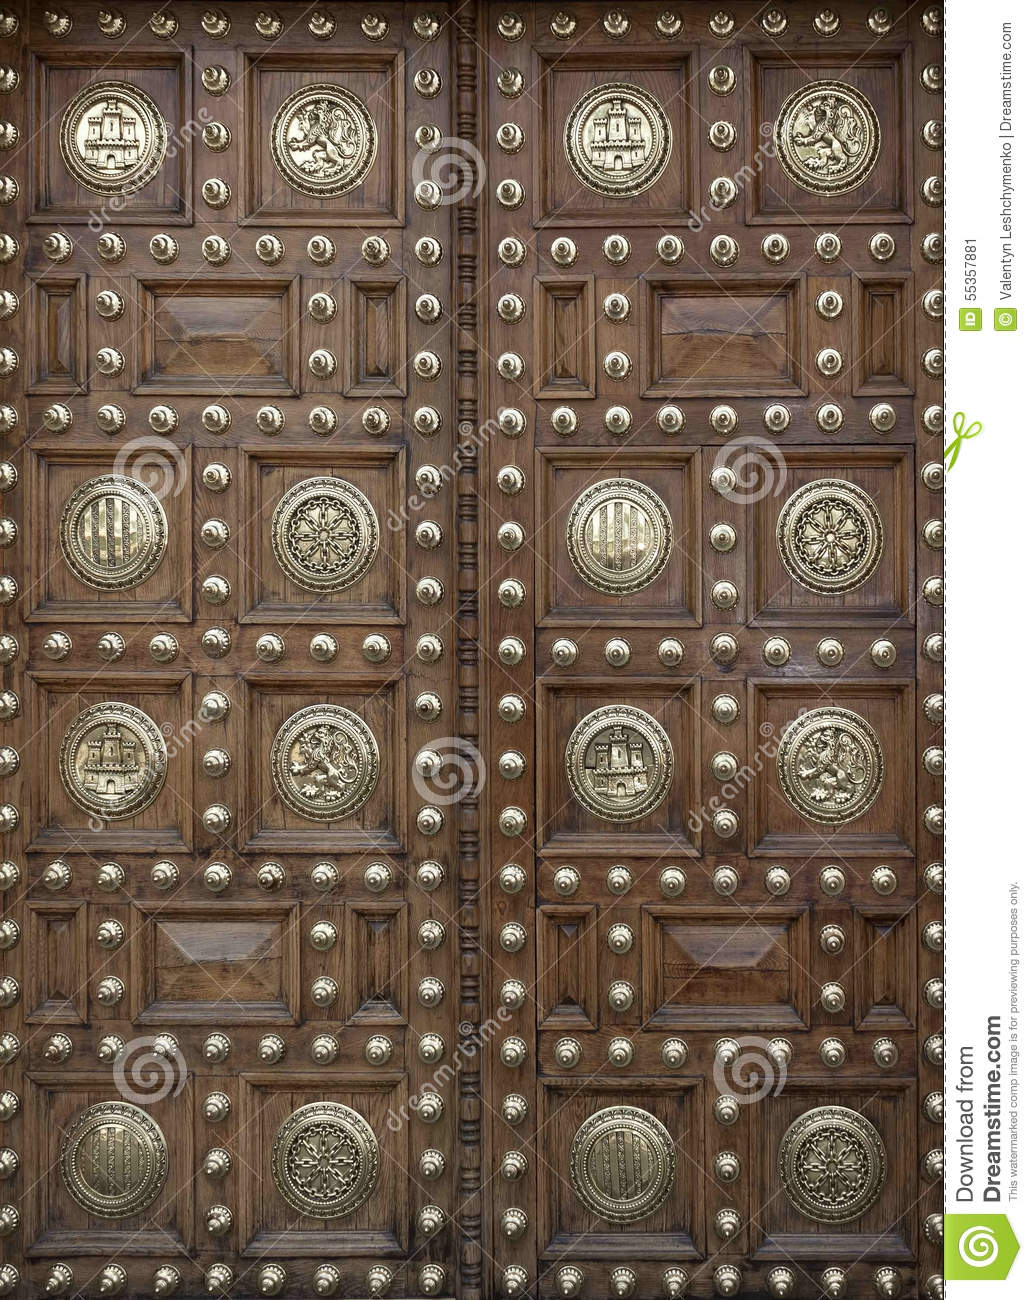 Large Wooden Doors Decorated Stock Image - Image of wood, ornament ...